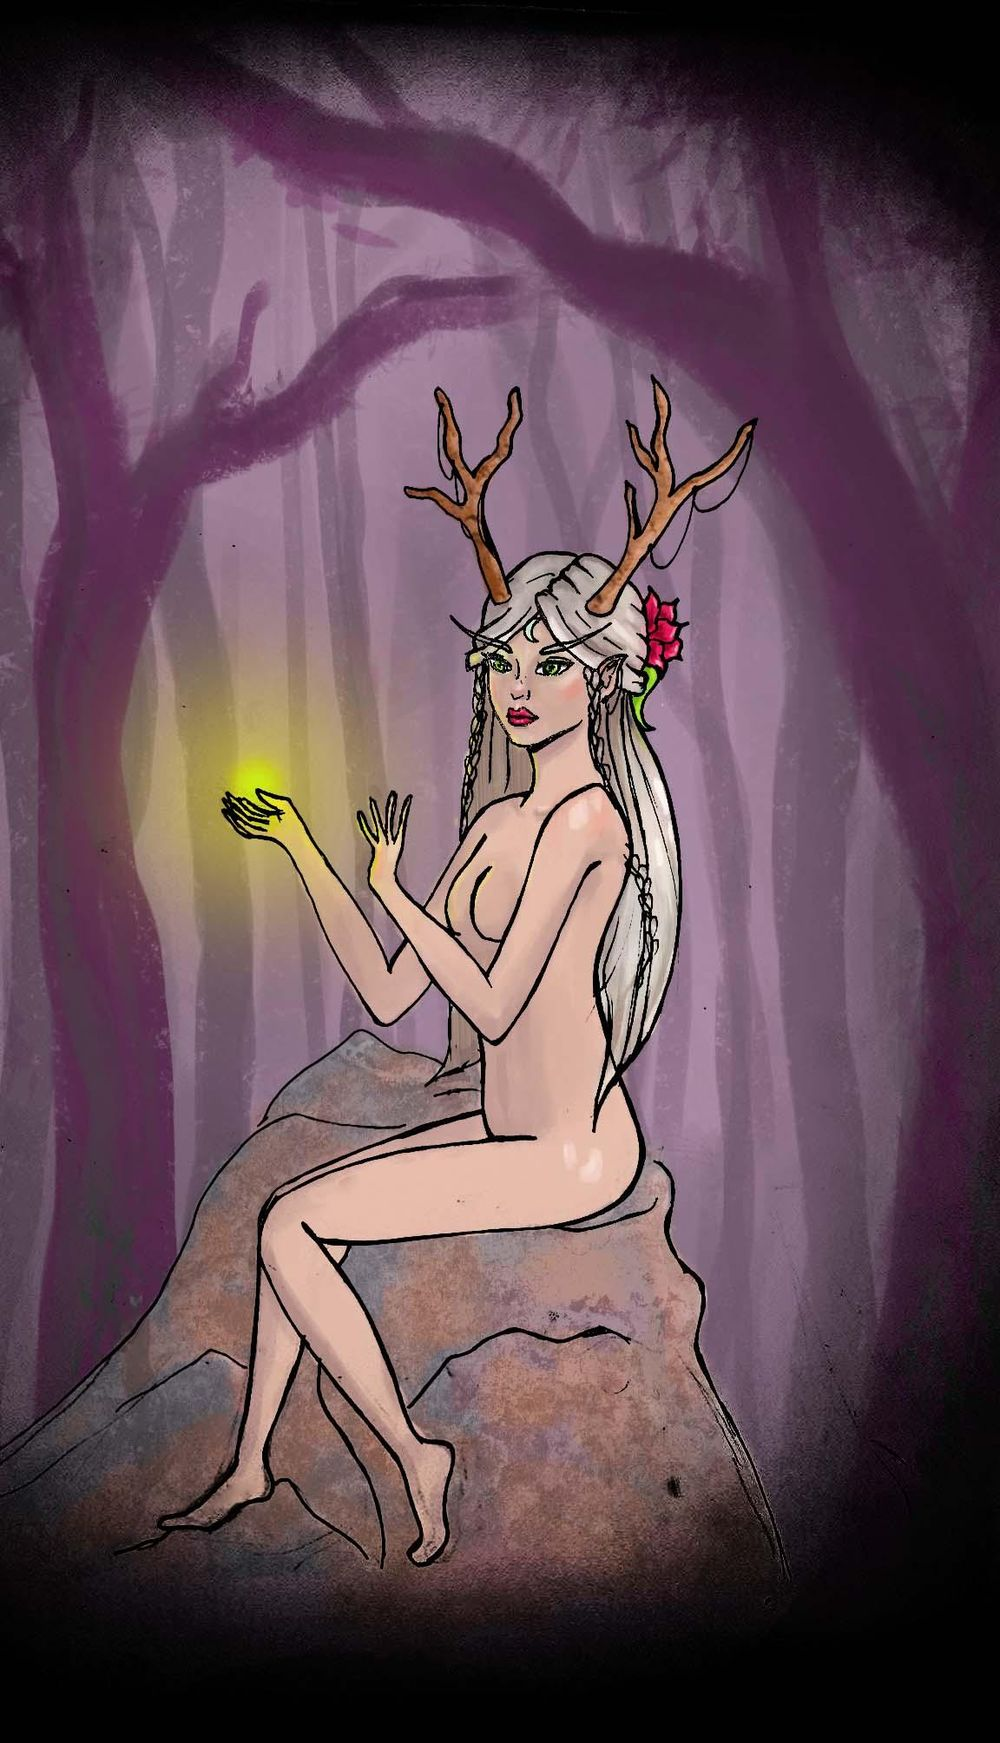 Elf - image 1 - student project